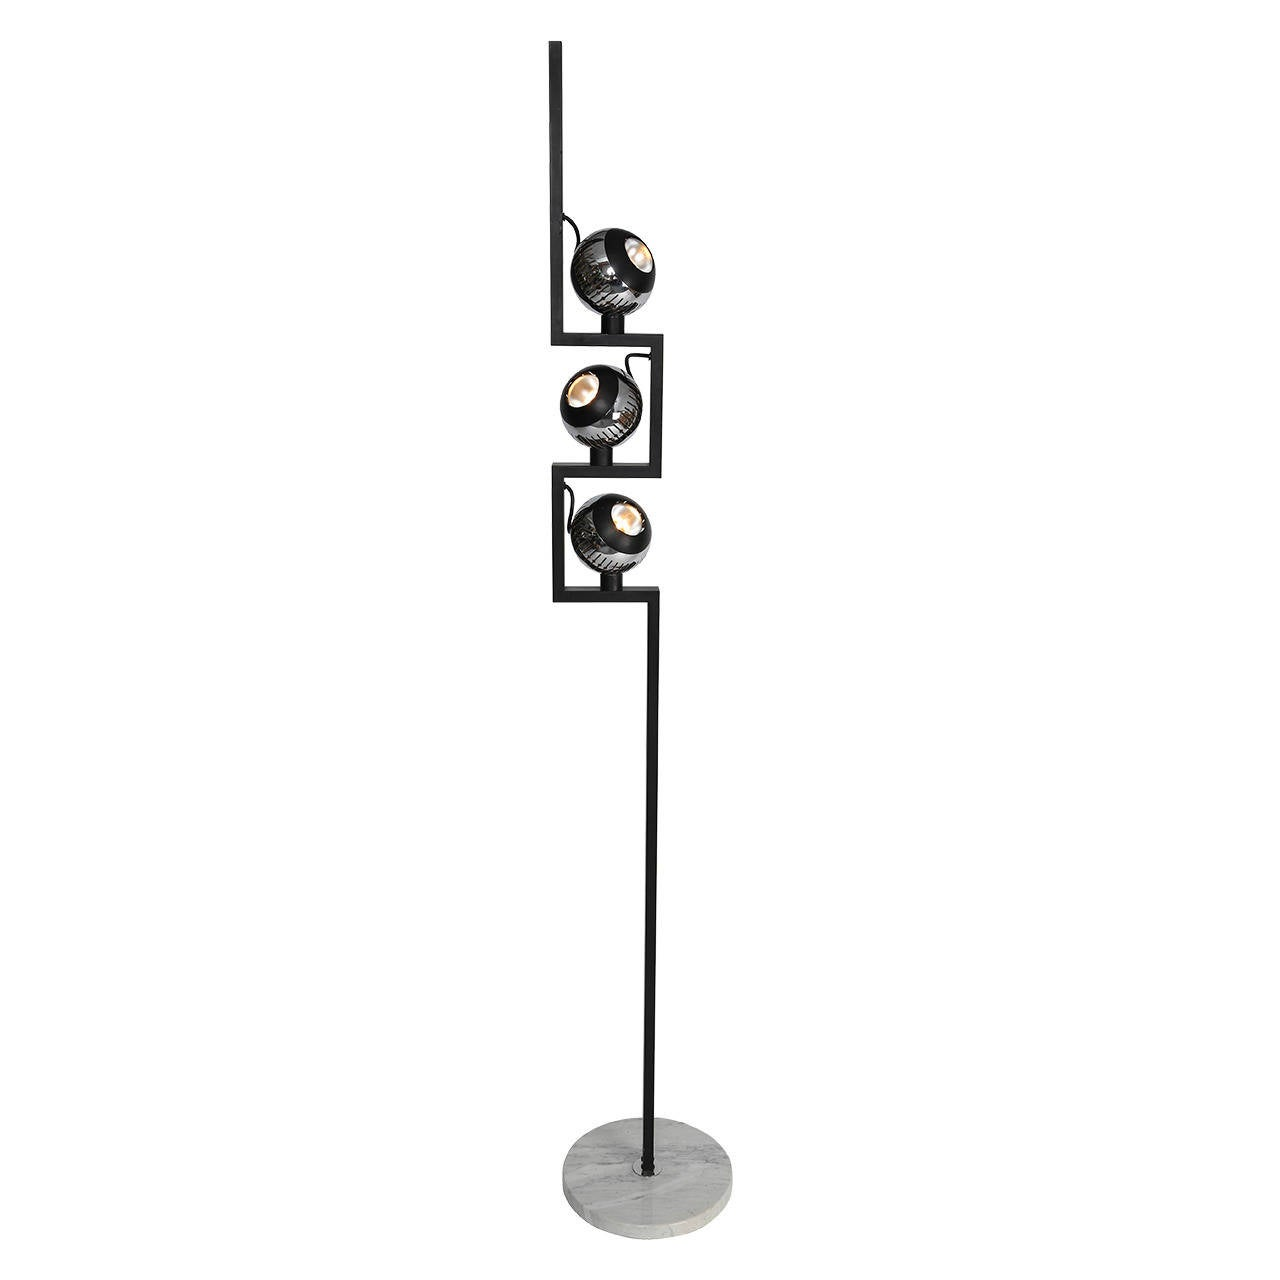 1970s Angelo Lelli for Arredoluce Floor Lamp